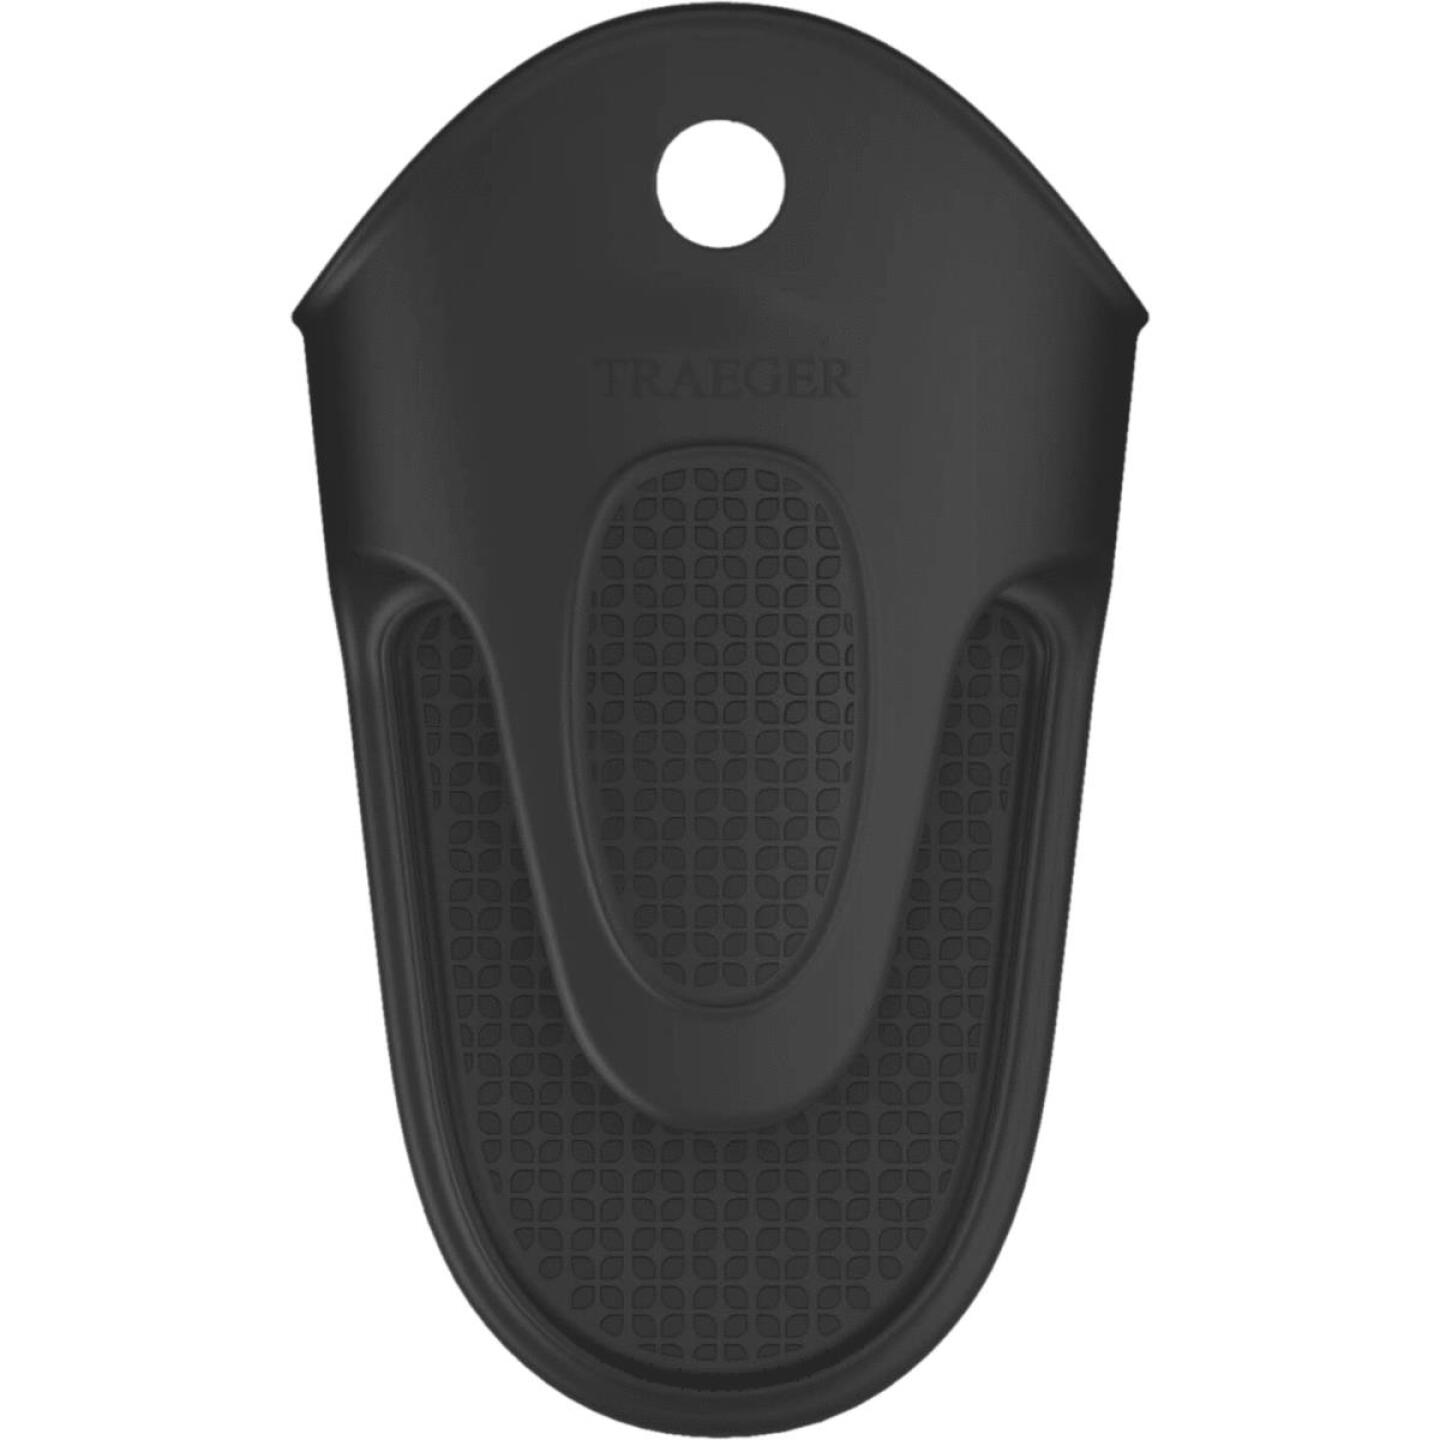 Traeger One Size Silicone Black Barbeque Mitt Image 1